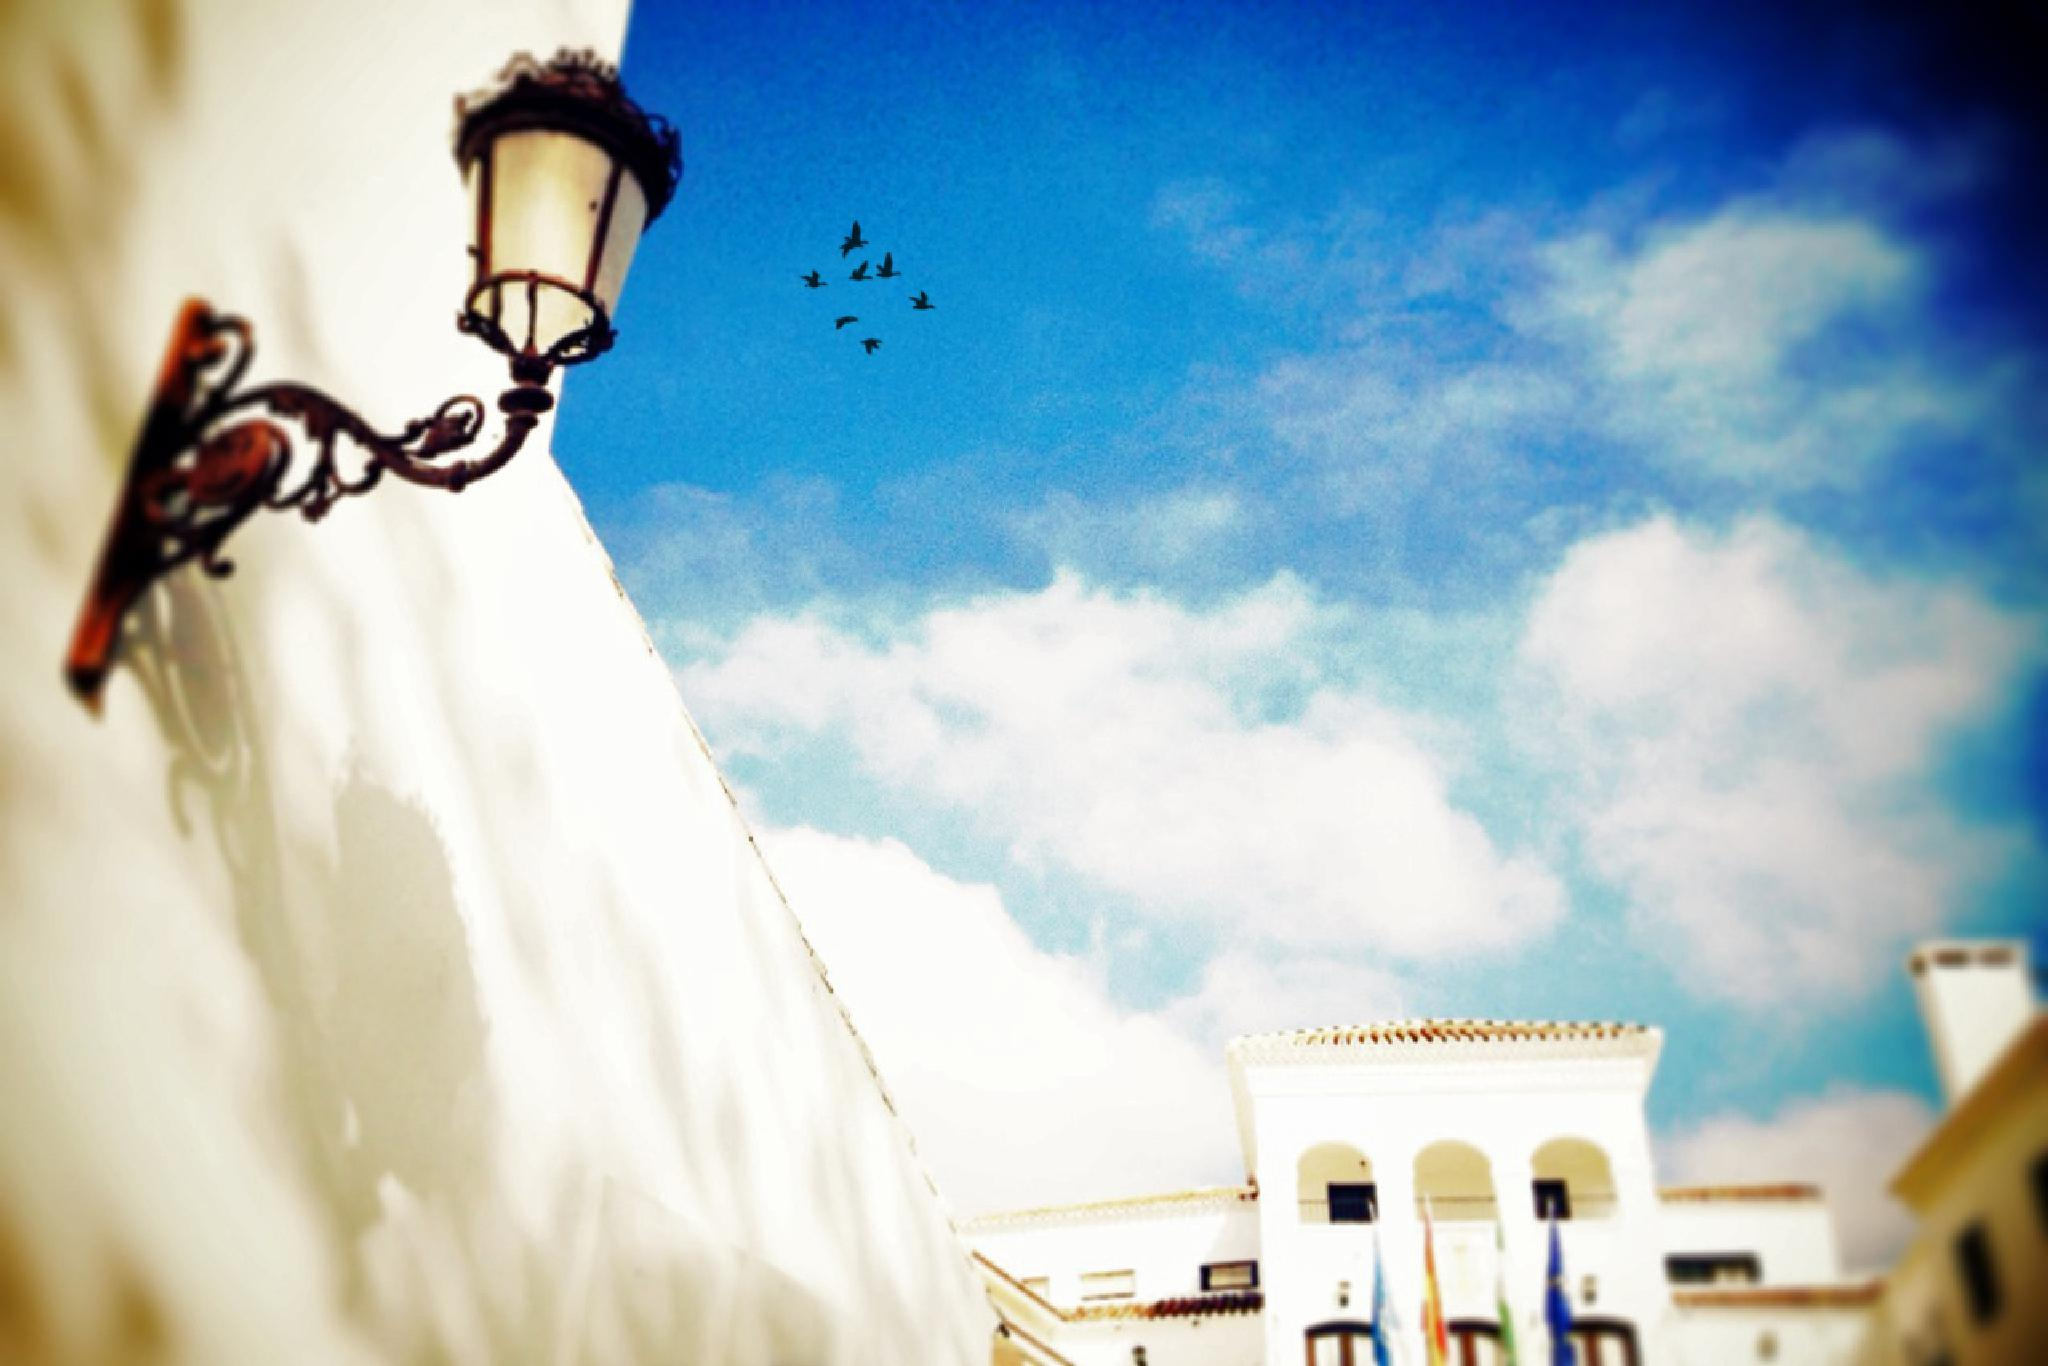 Andalucia by nick.kenrick.9